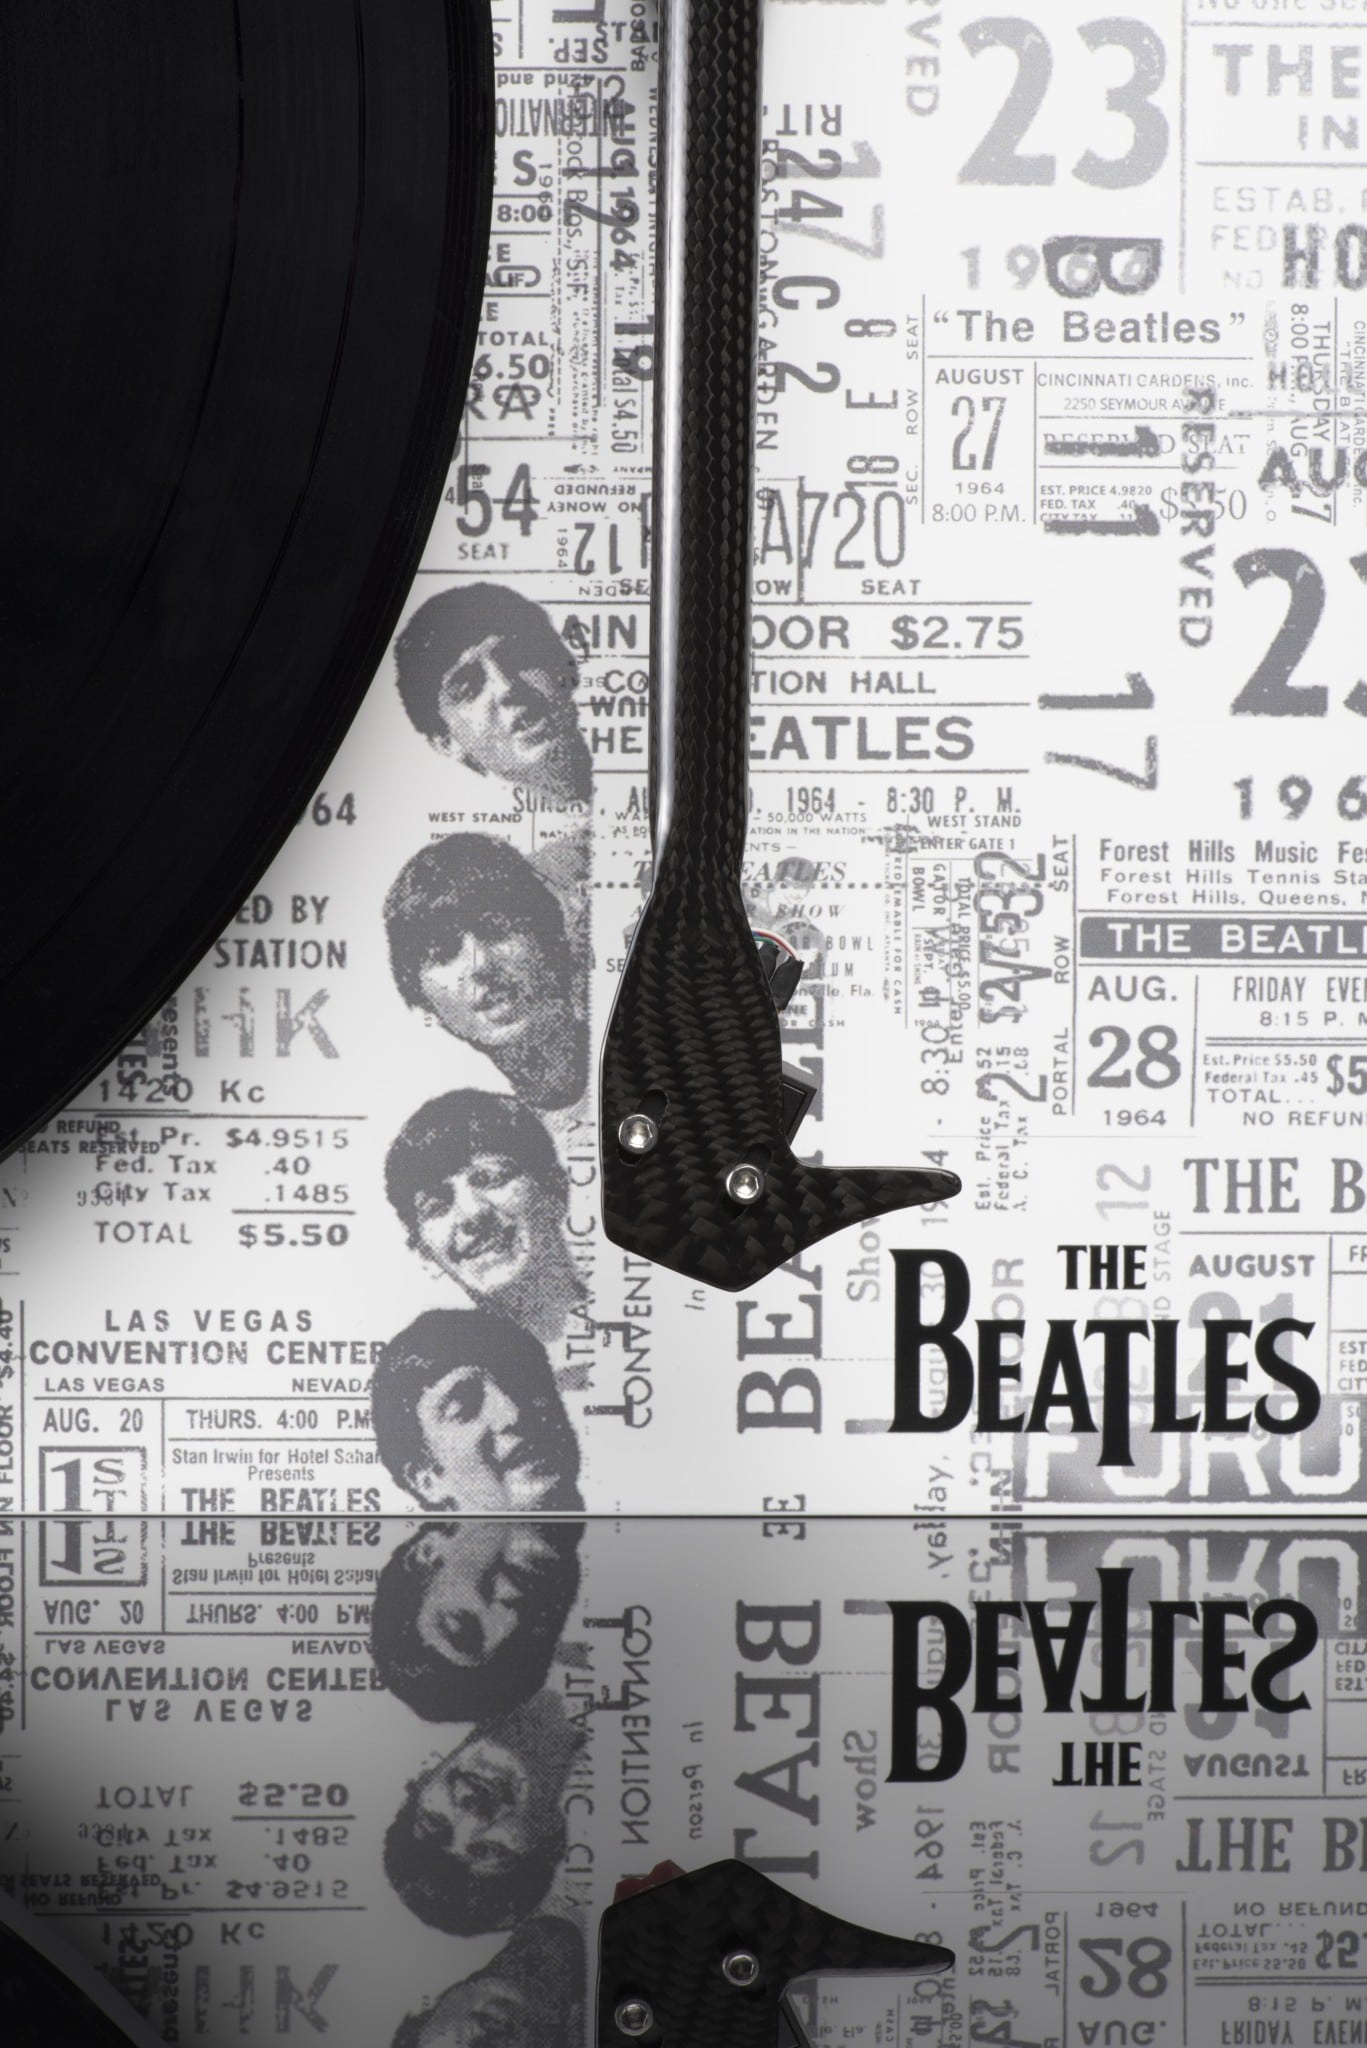 Pro Ject Amp The Beatles 1964 Recordplayer Limited Edition